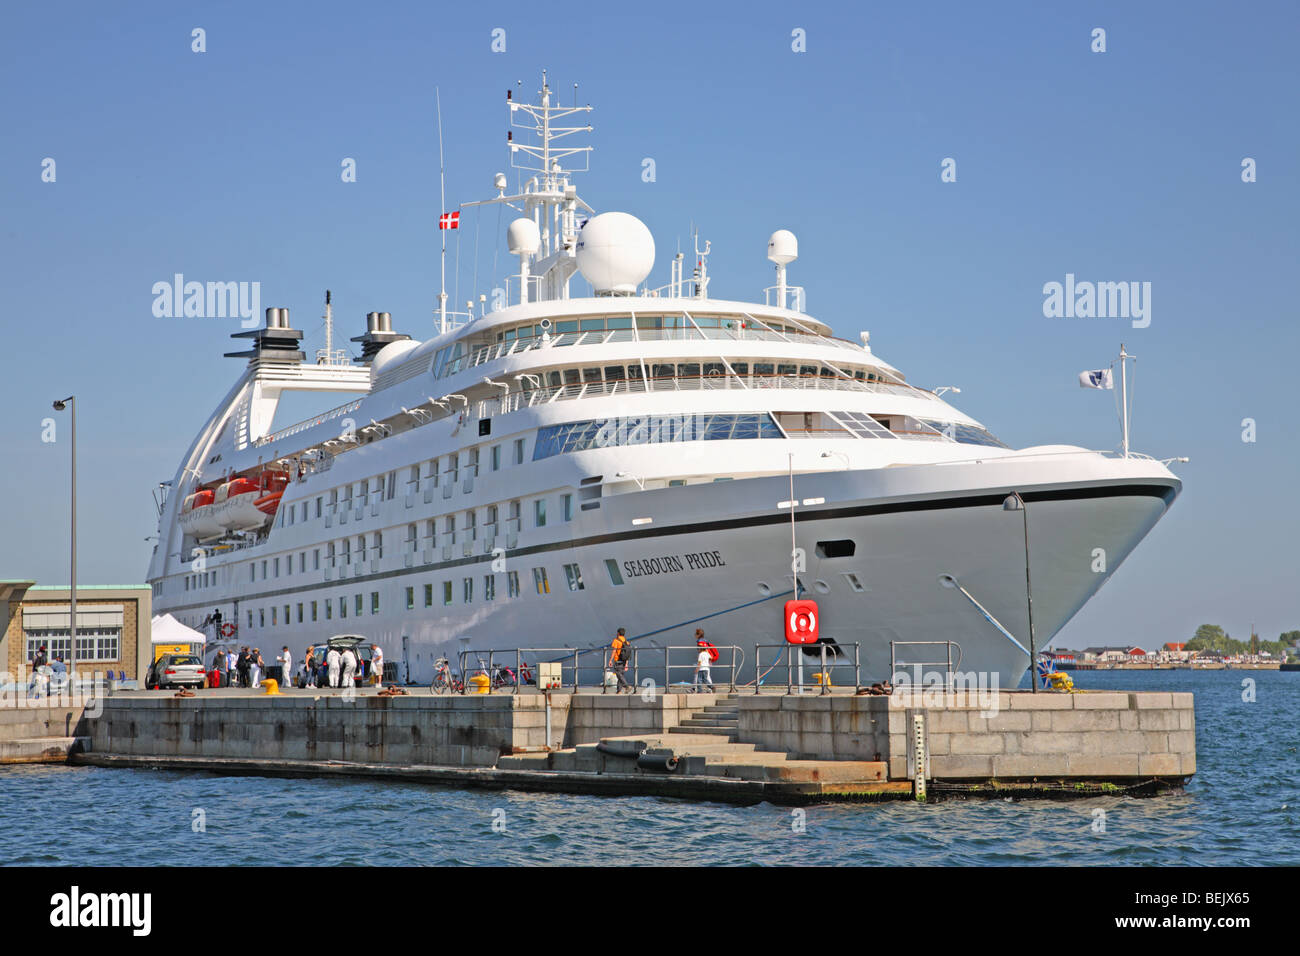 The cruise ship the MS Seabourn Pride calling at the Port of Copenhagen, Denmark, moored near the old custom house - Stock Image